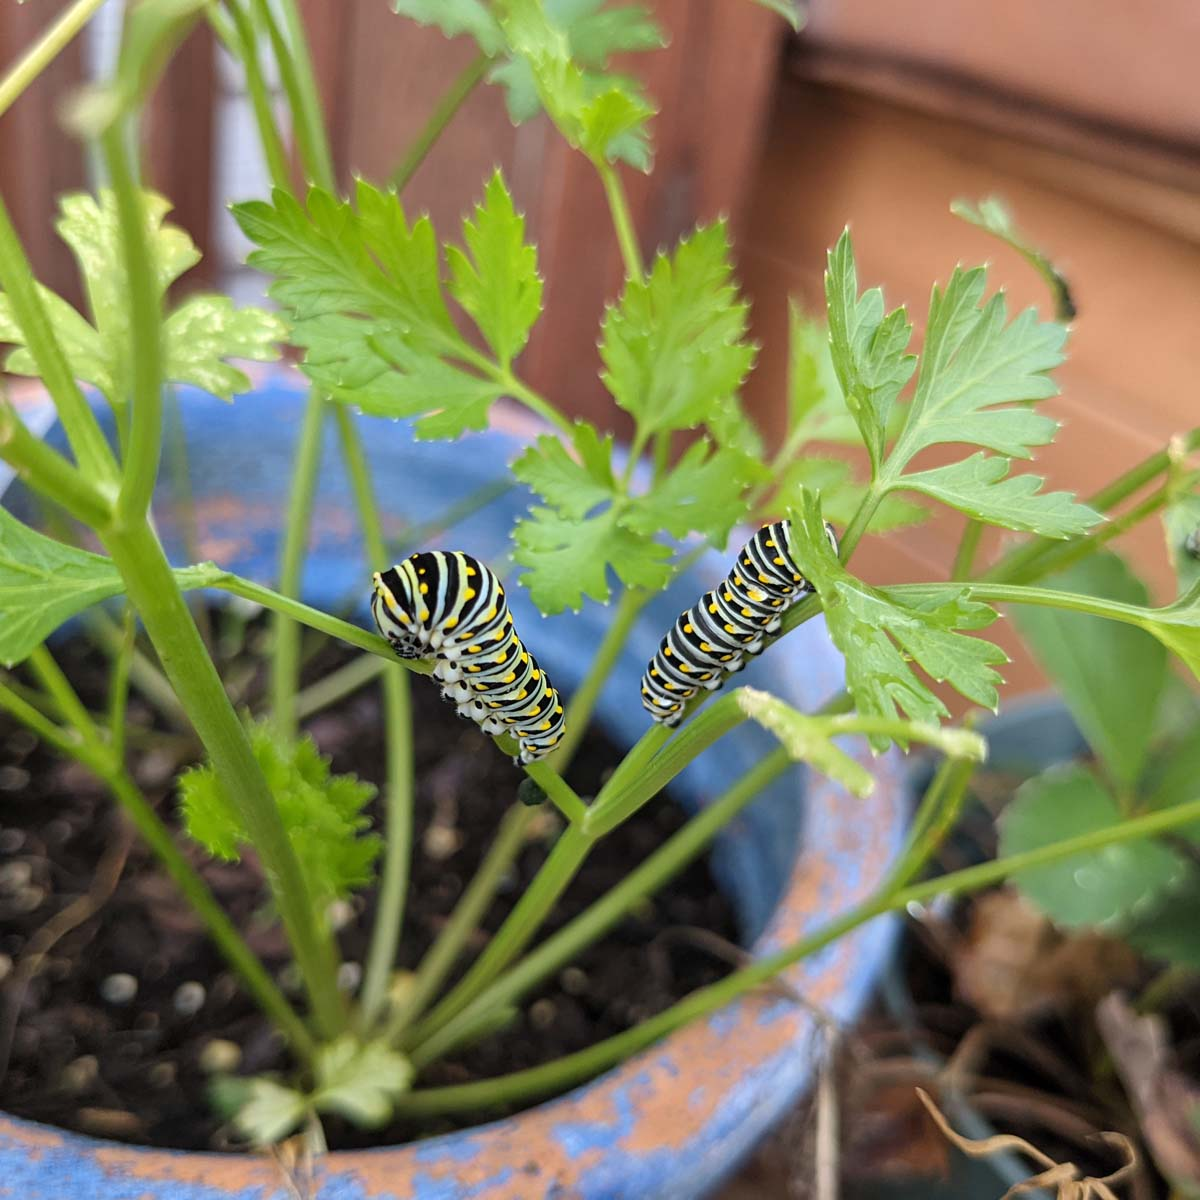 Swallowtail Caterpillar and another one on parsley in a ceramic pot